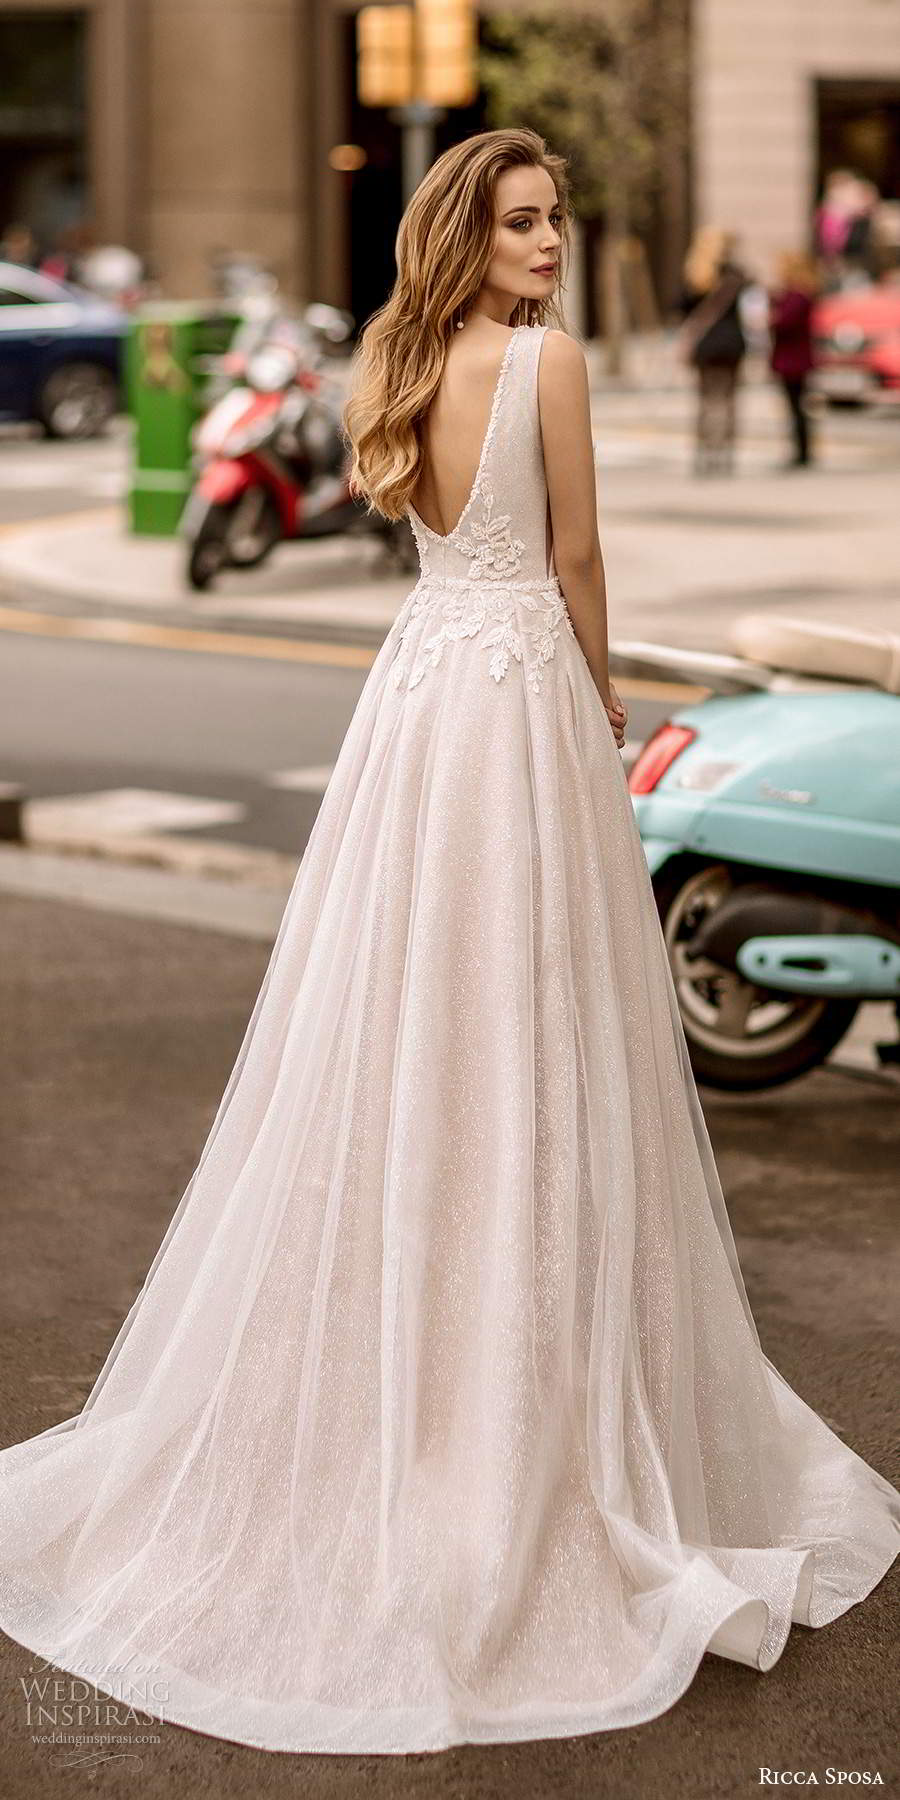 ricca sposa 2020 barcelona bridal sleeveless thick straps plunging v neckline heavily embellished bodice side cutout a line ball gown wedding dress v back chapel train (21) bv